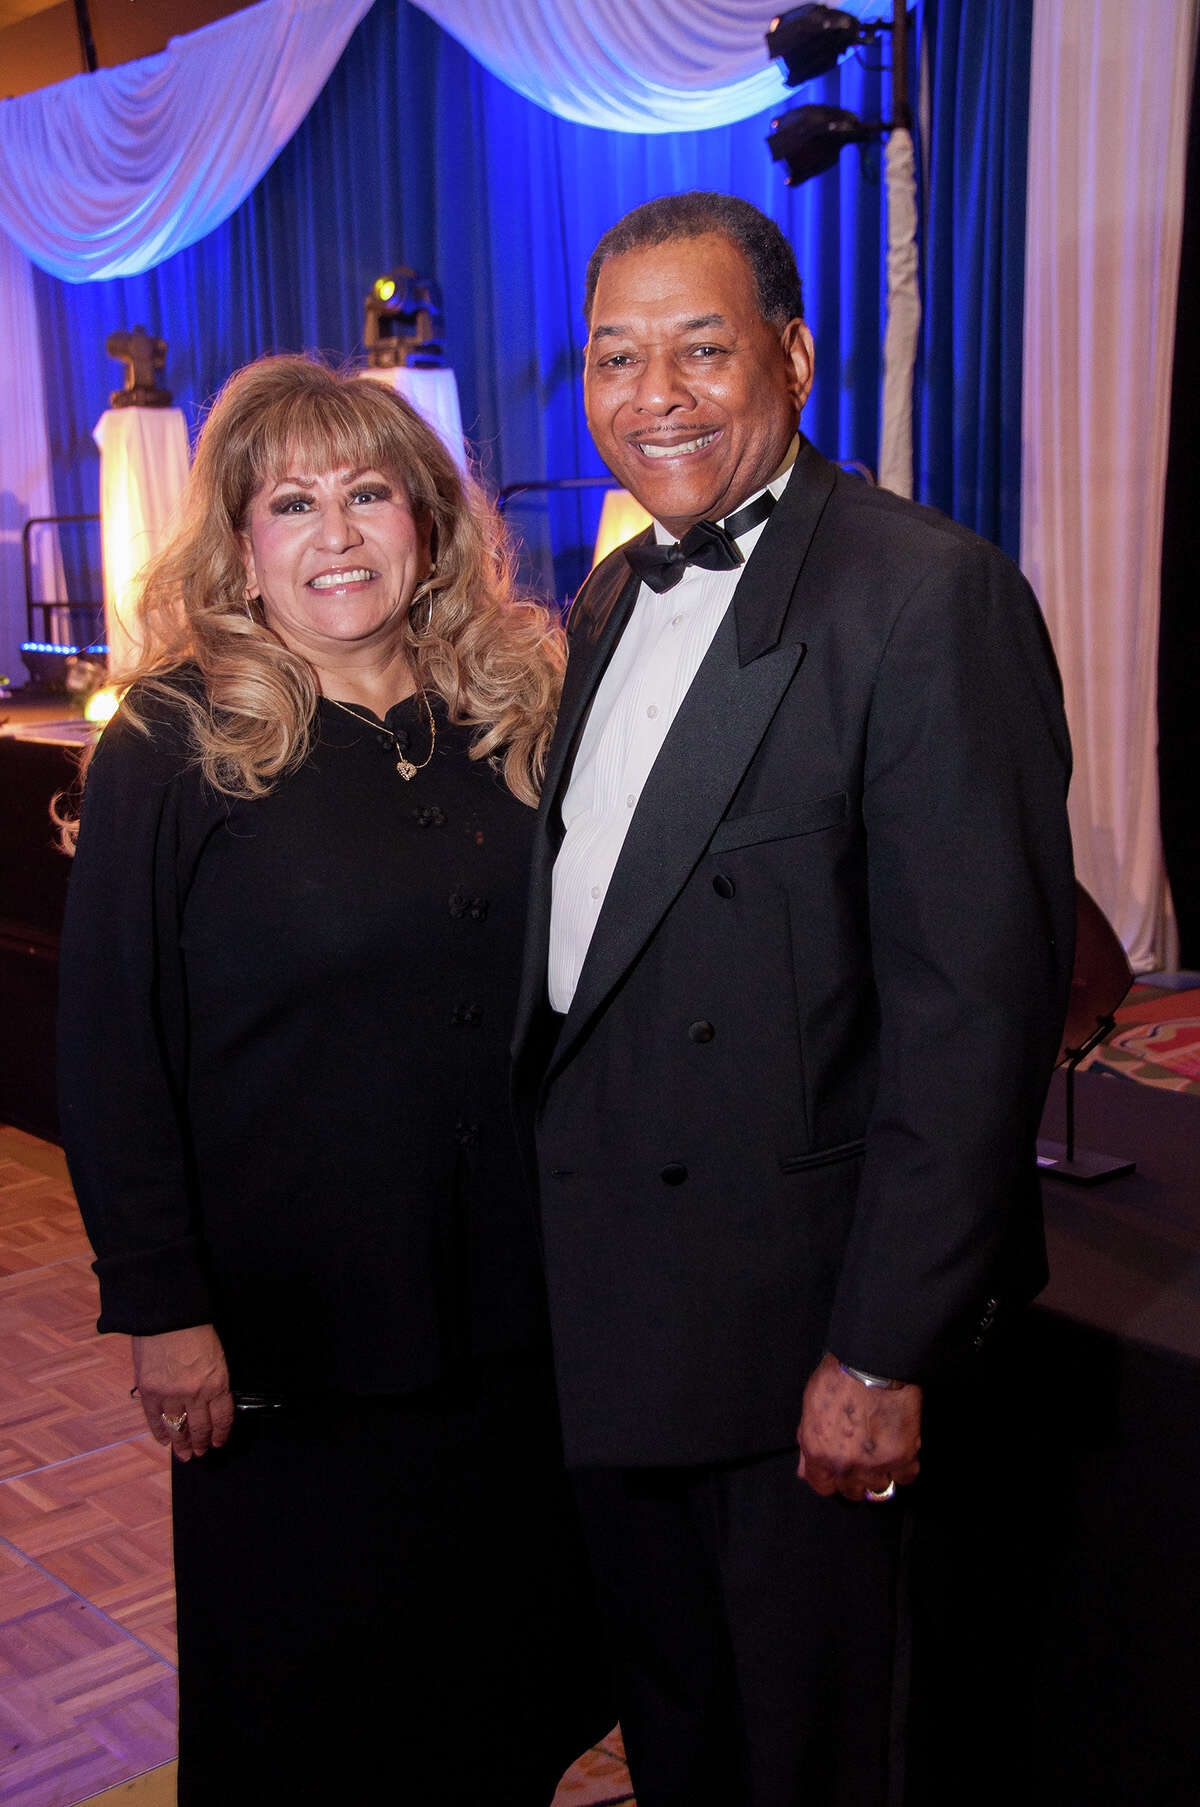 Honorees Mary Ramos and Claude Cummings attended the Houston NAACP 2012 Freedom Fund Gala on Friday, Oct. 26, 2012, at the Hilton Americas.